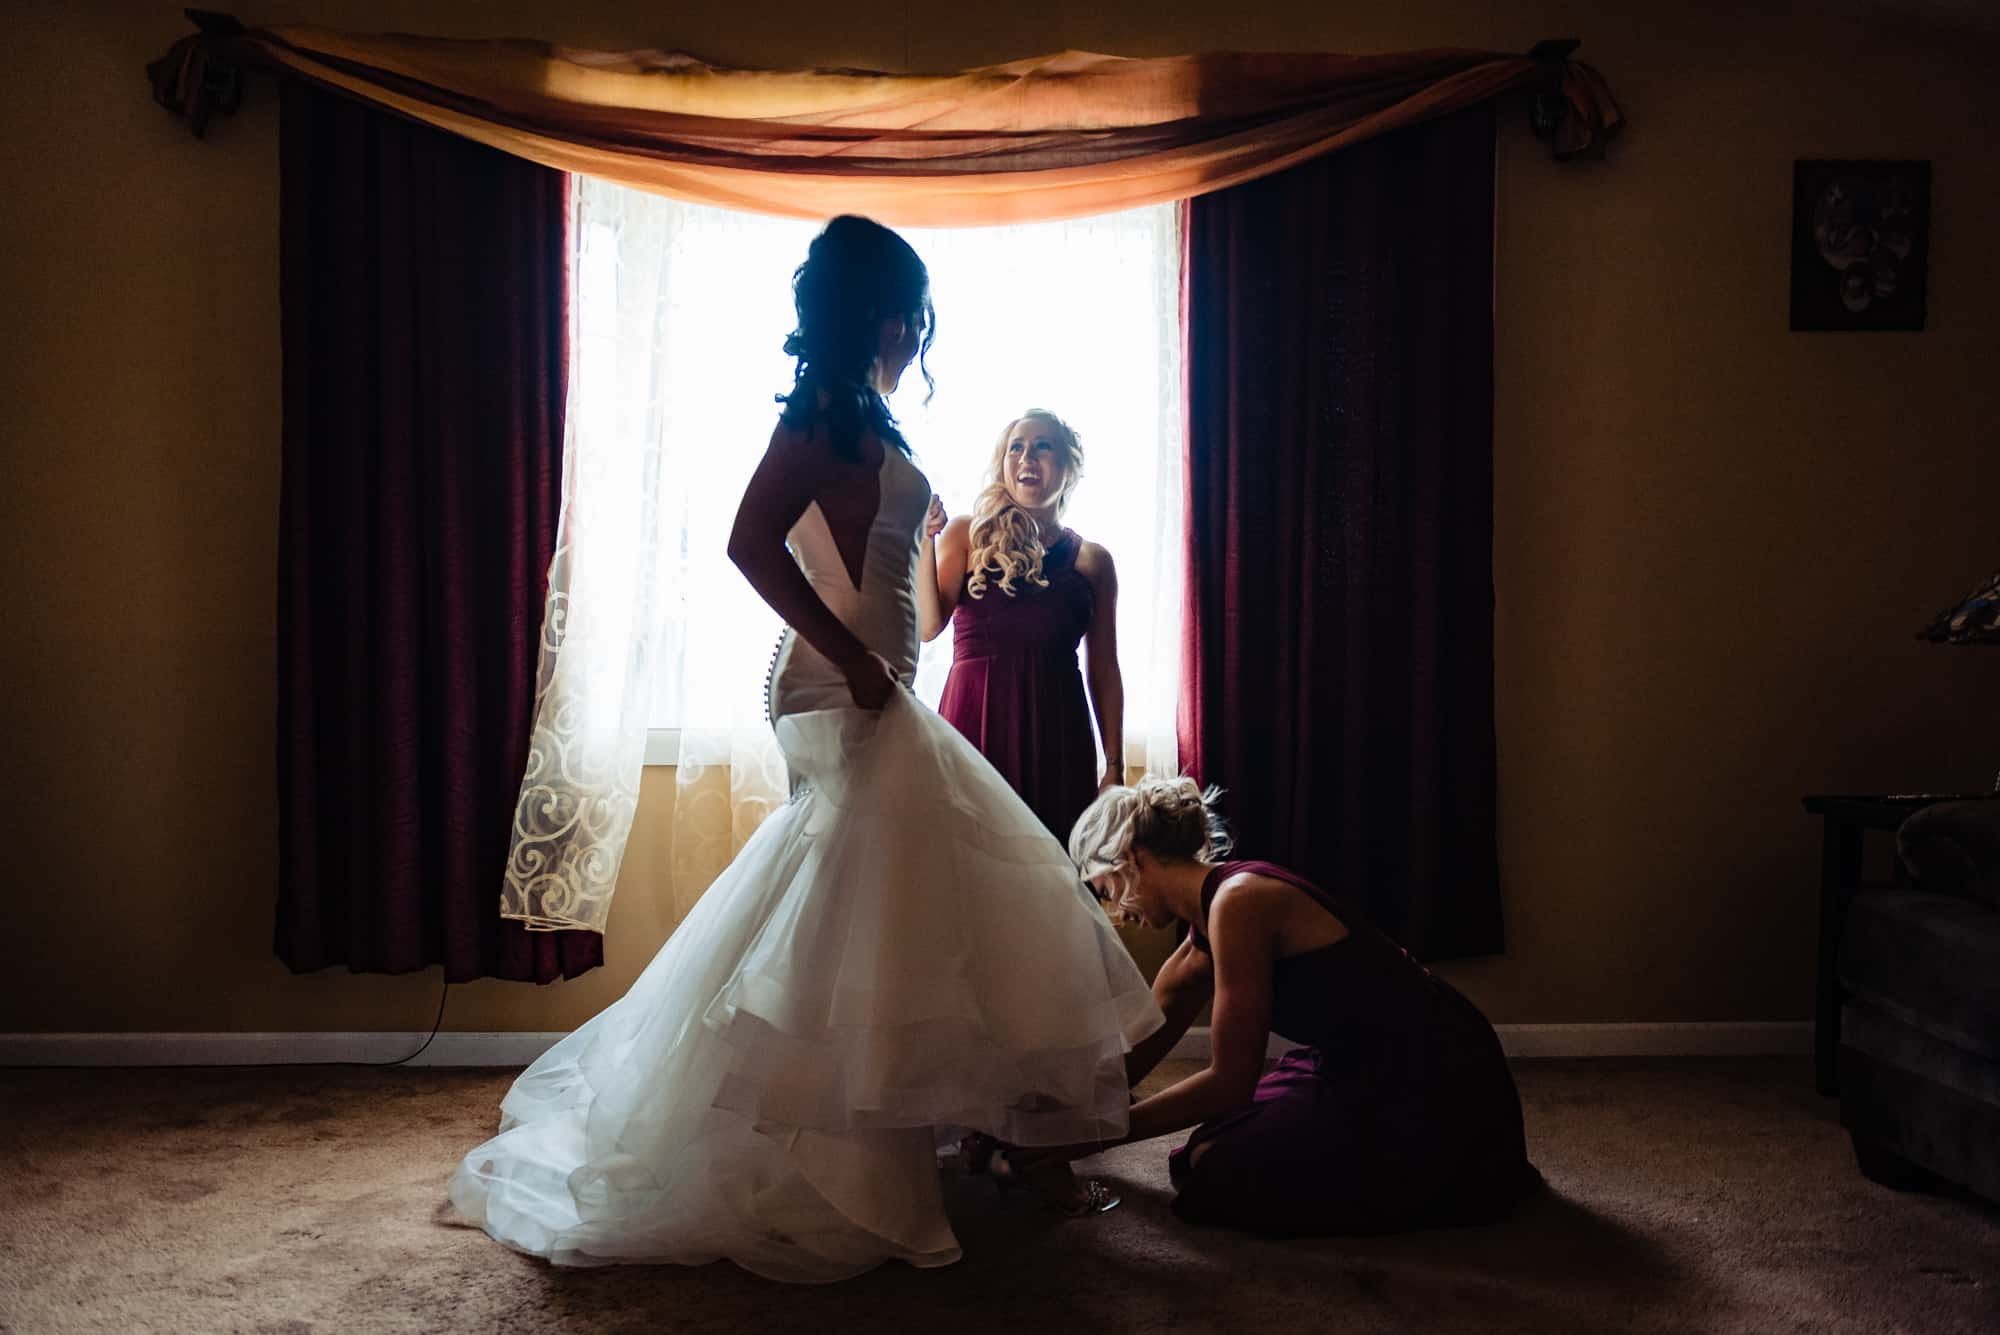 wedding morning, bridesmaids helping bride put on shoes